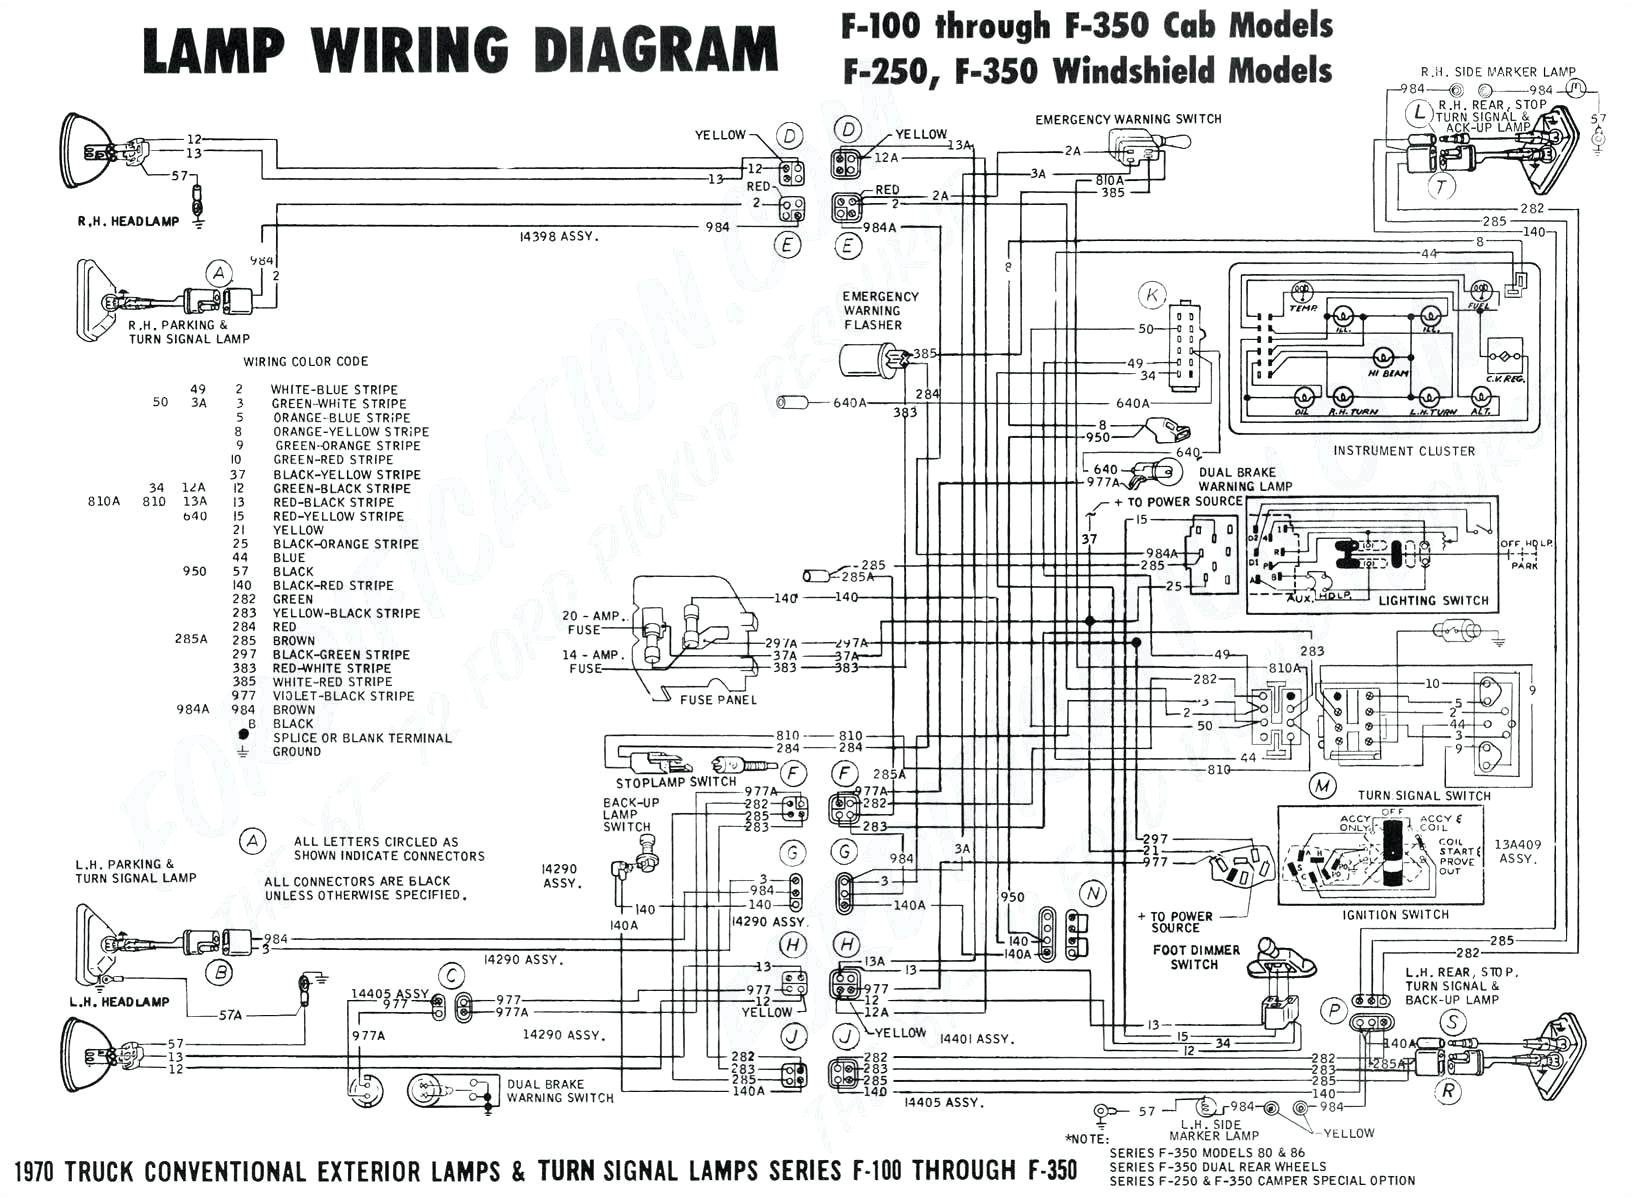 v8043e1061 wiring diagram electrical schematic wiring diagram tiger truck wiring diagram wiring diagram page v8043e1061 wiring